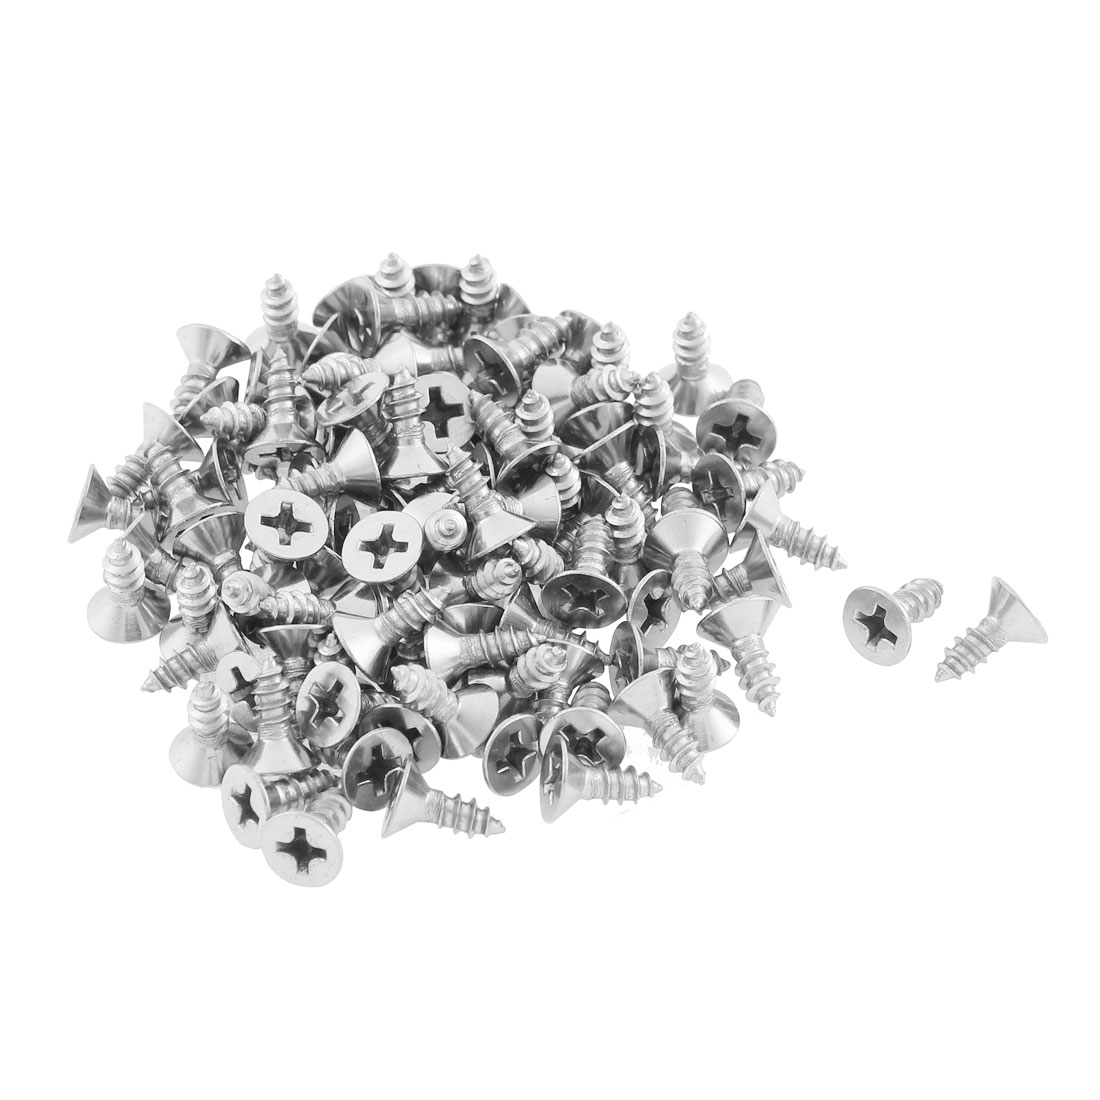 100 Pcs 3.5mmx9.5mm Stainless Steel Phillips Flat Head Sheet Self Tapping Screws